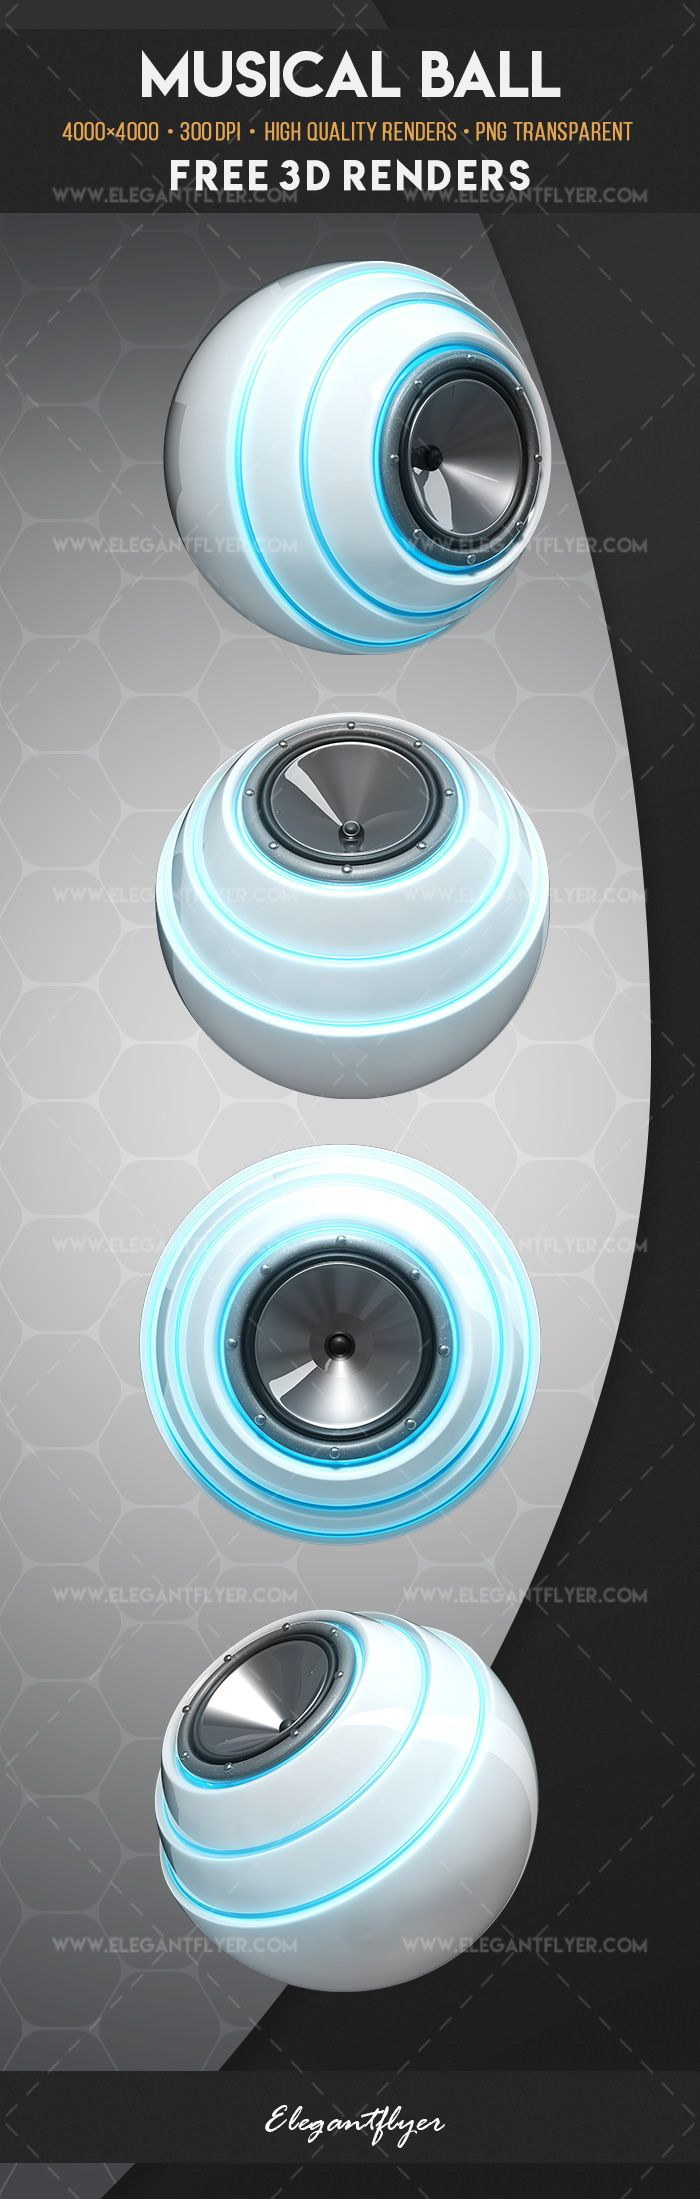 Music Ball – Free 3d Render Templates